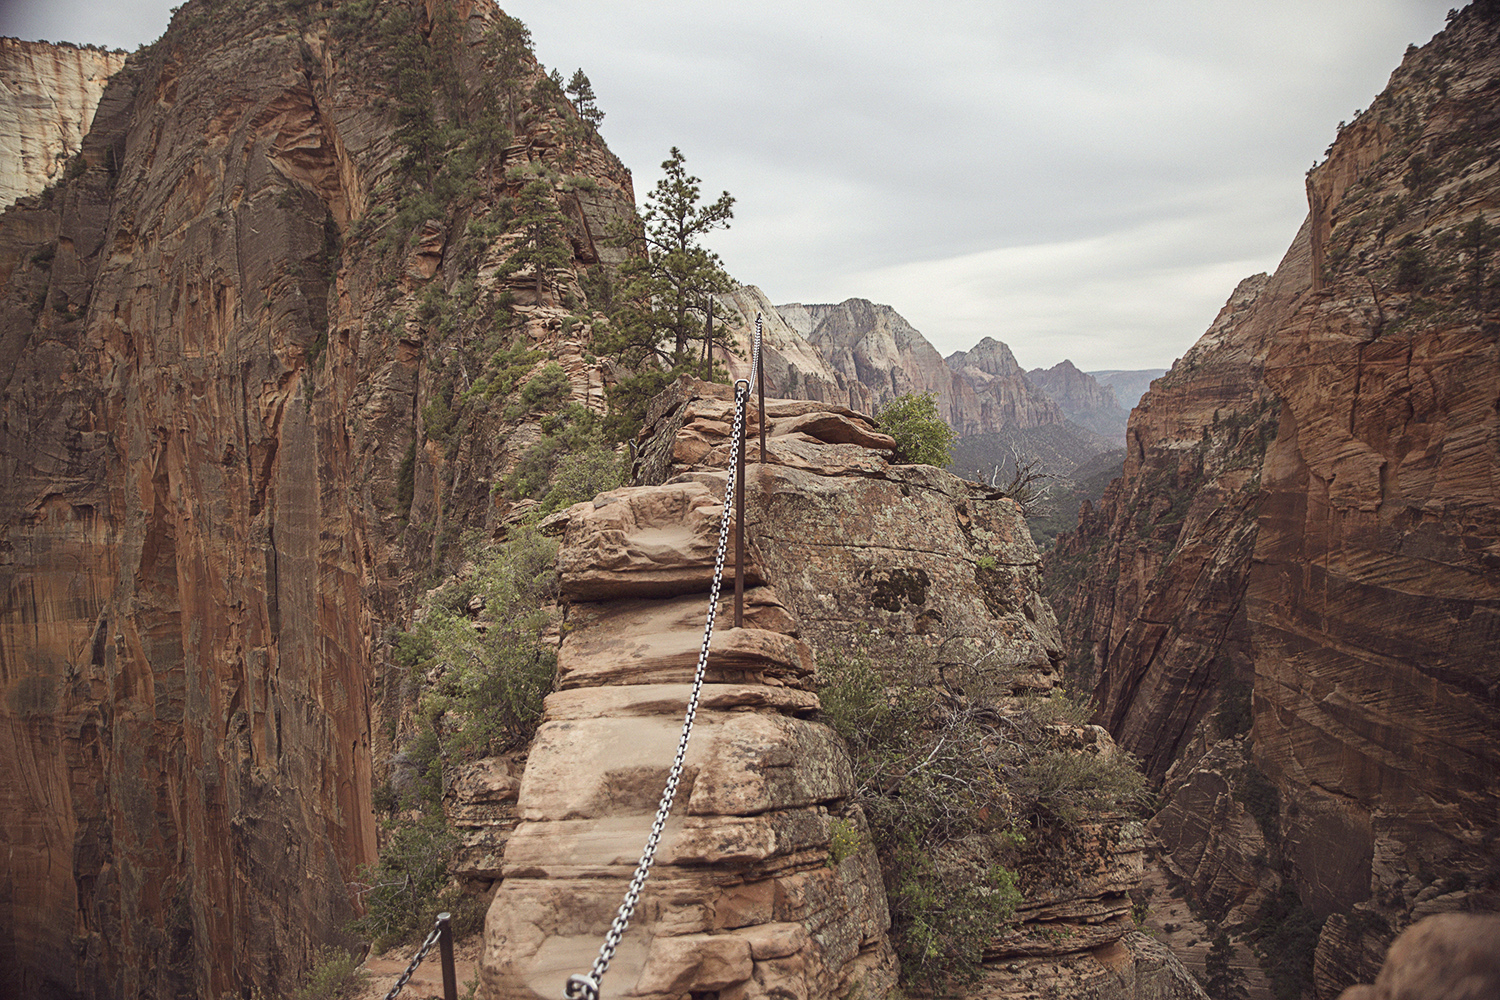 2017-06-08_Zion_Nationalpark_028.jpg